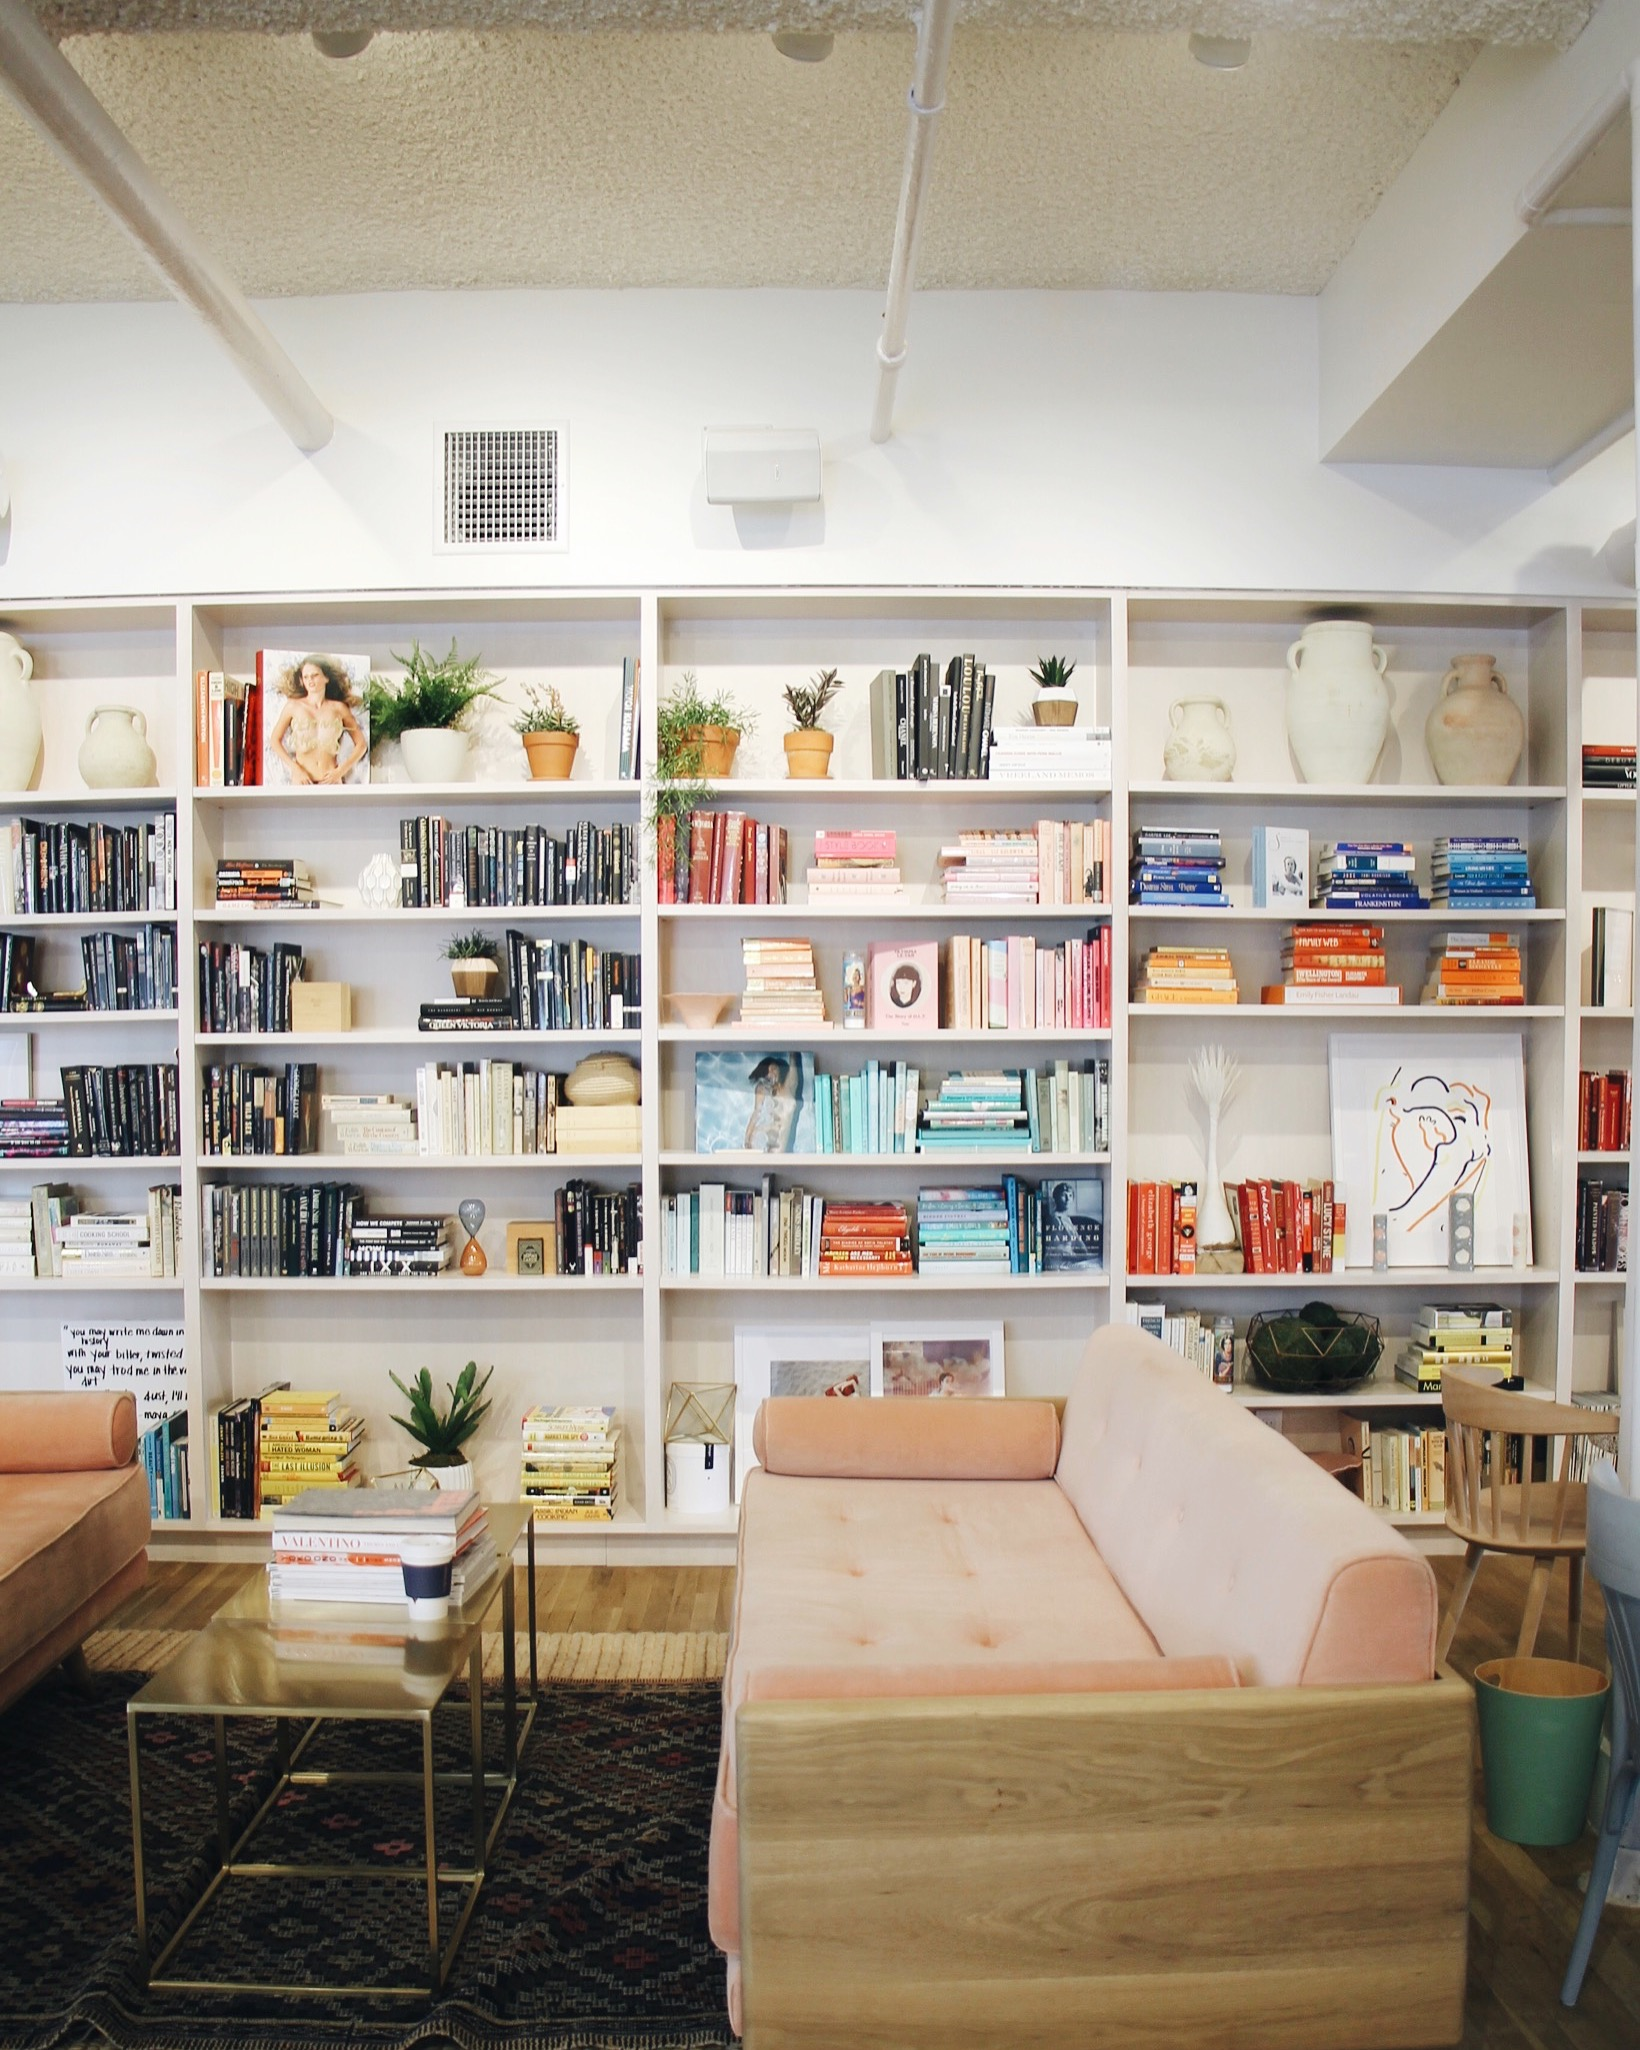 Inside The Wing, NYC's Women-Only Social Club and Co-working Space, The Wing, The Wing New York, The Wing Social Club, The Wing Women's Club, The Wing Coworking Space